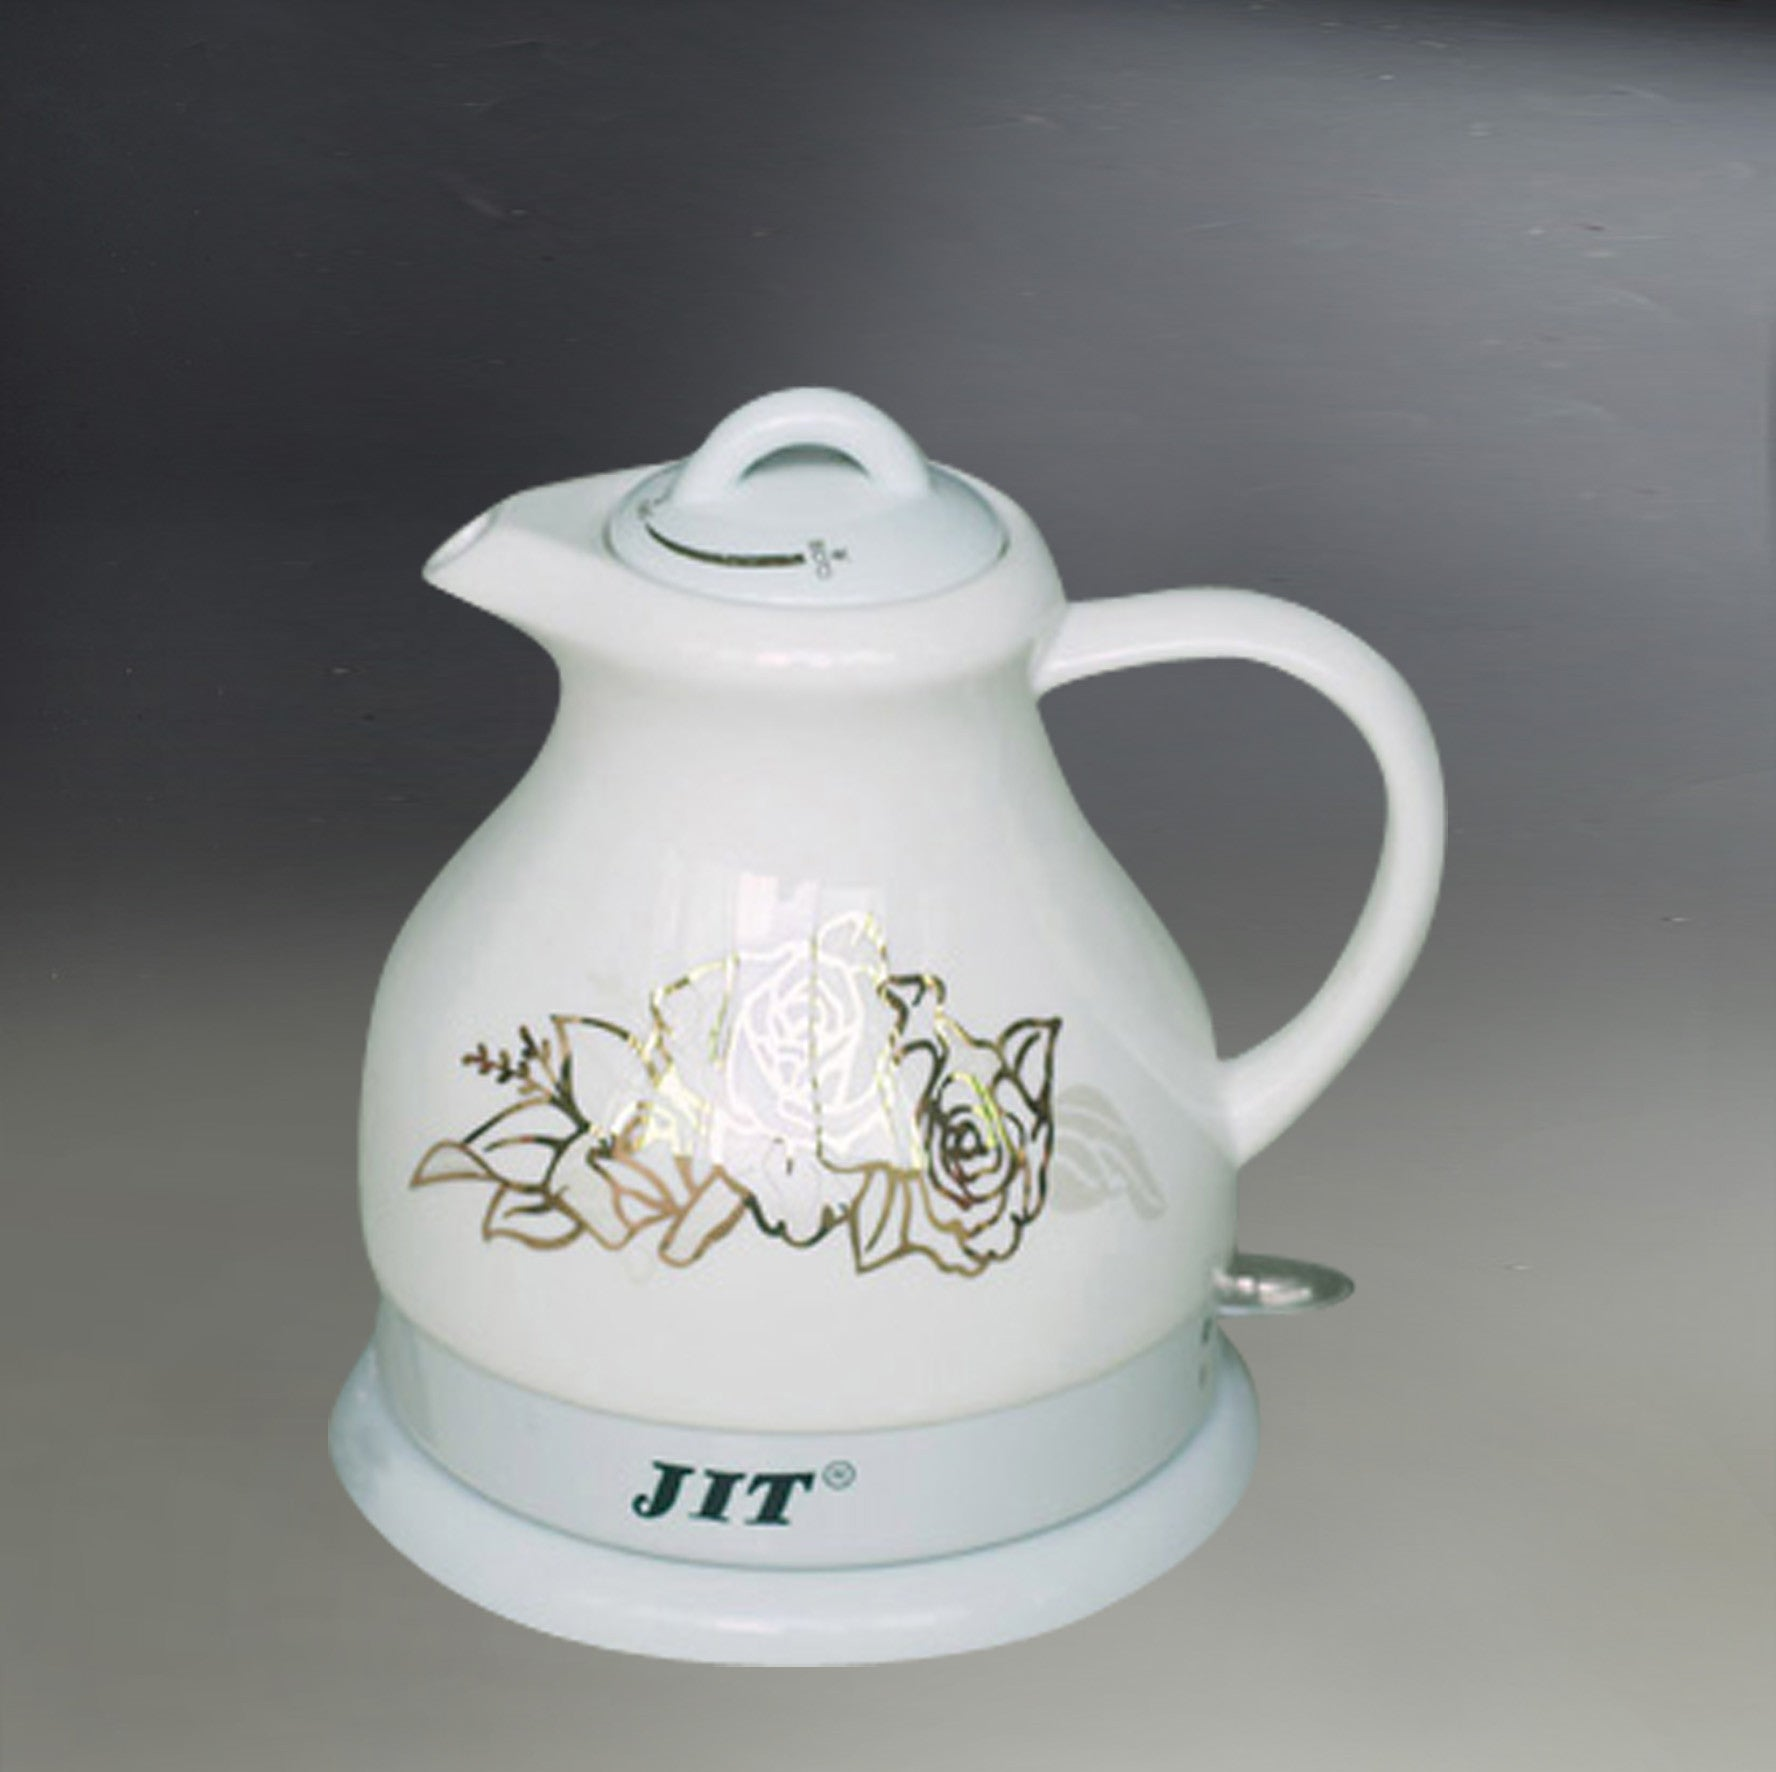 Porcelain Electric Kettle ~ Other home decor porcelain electric kettles was listed